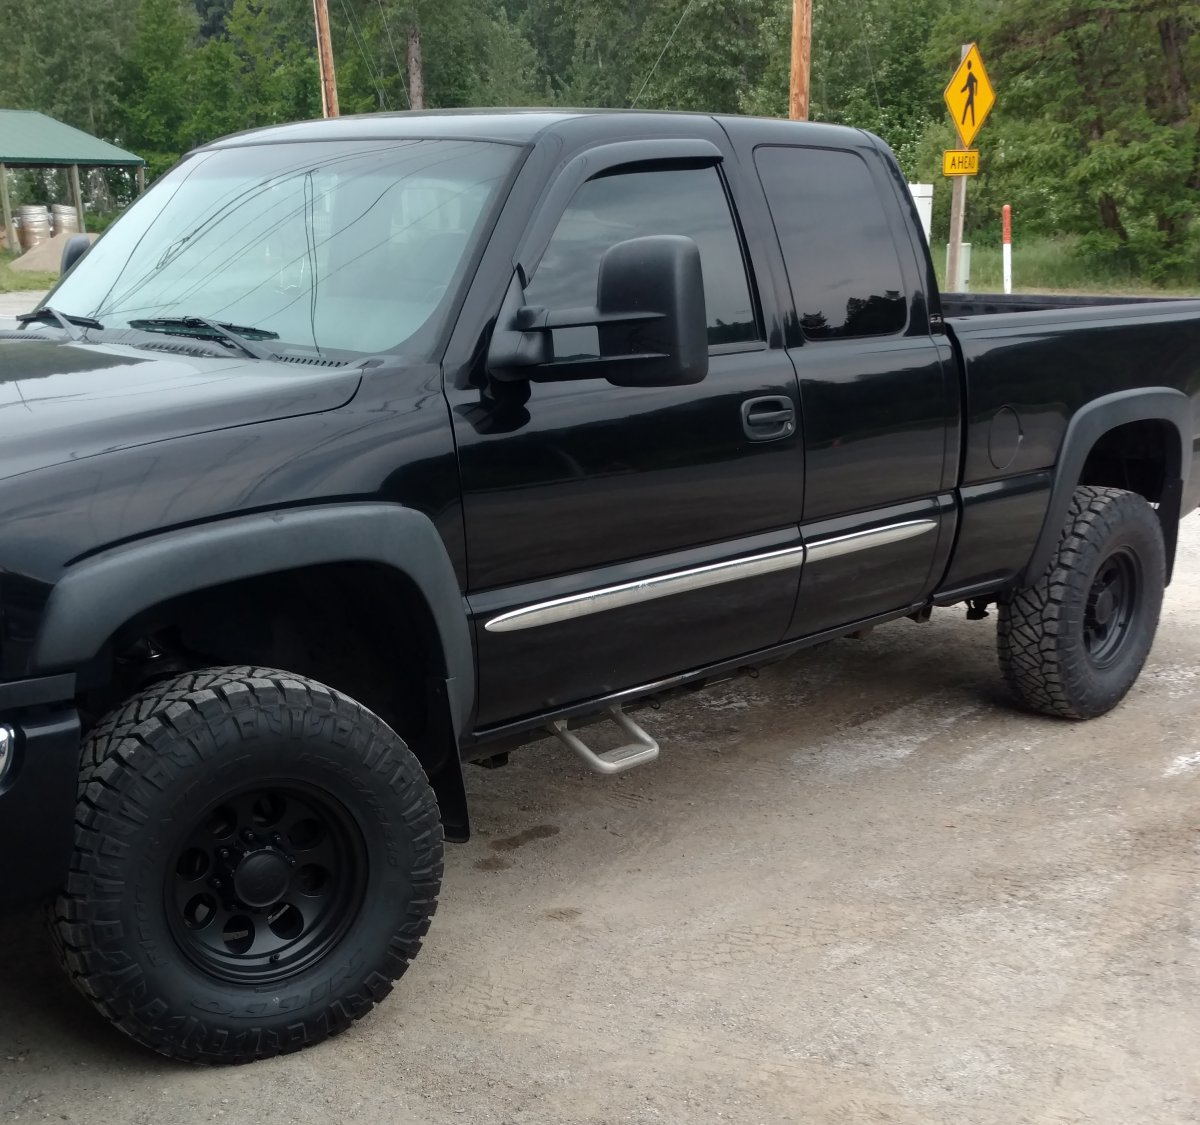 2006 Sierra 2500 with Black 171 Wheels